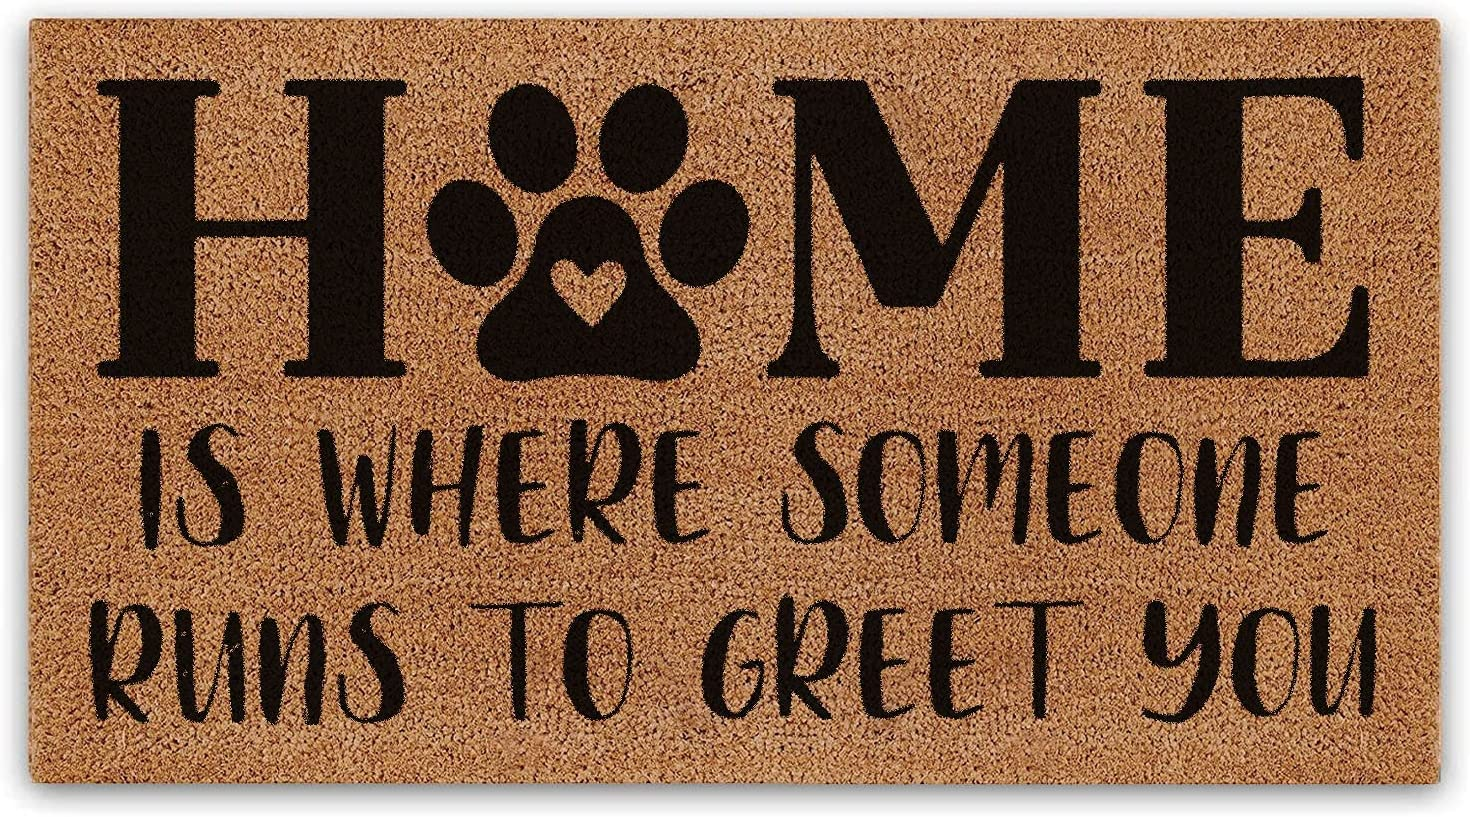 BasicForm Front Door Mat Outdoor, Coco Dog Mat Doormats Rugs for Outside Entry Muddy Paws ,Funny Gift for Dog Lover, 17'x30' Size, Home is Where Someone Runs to Greet You